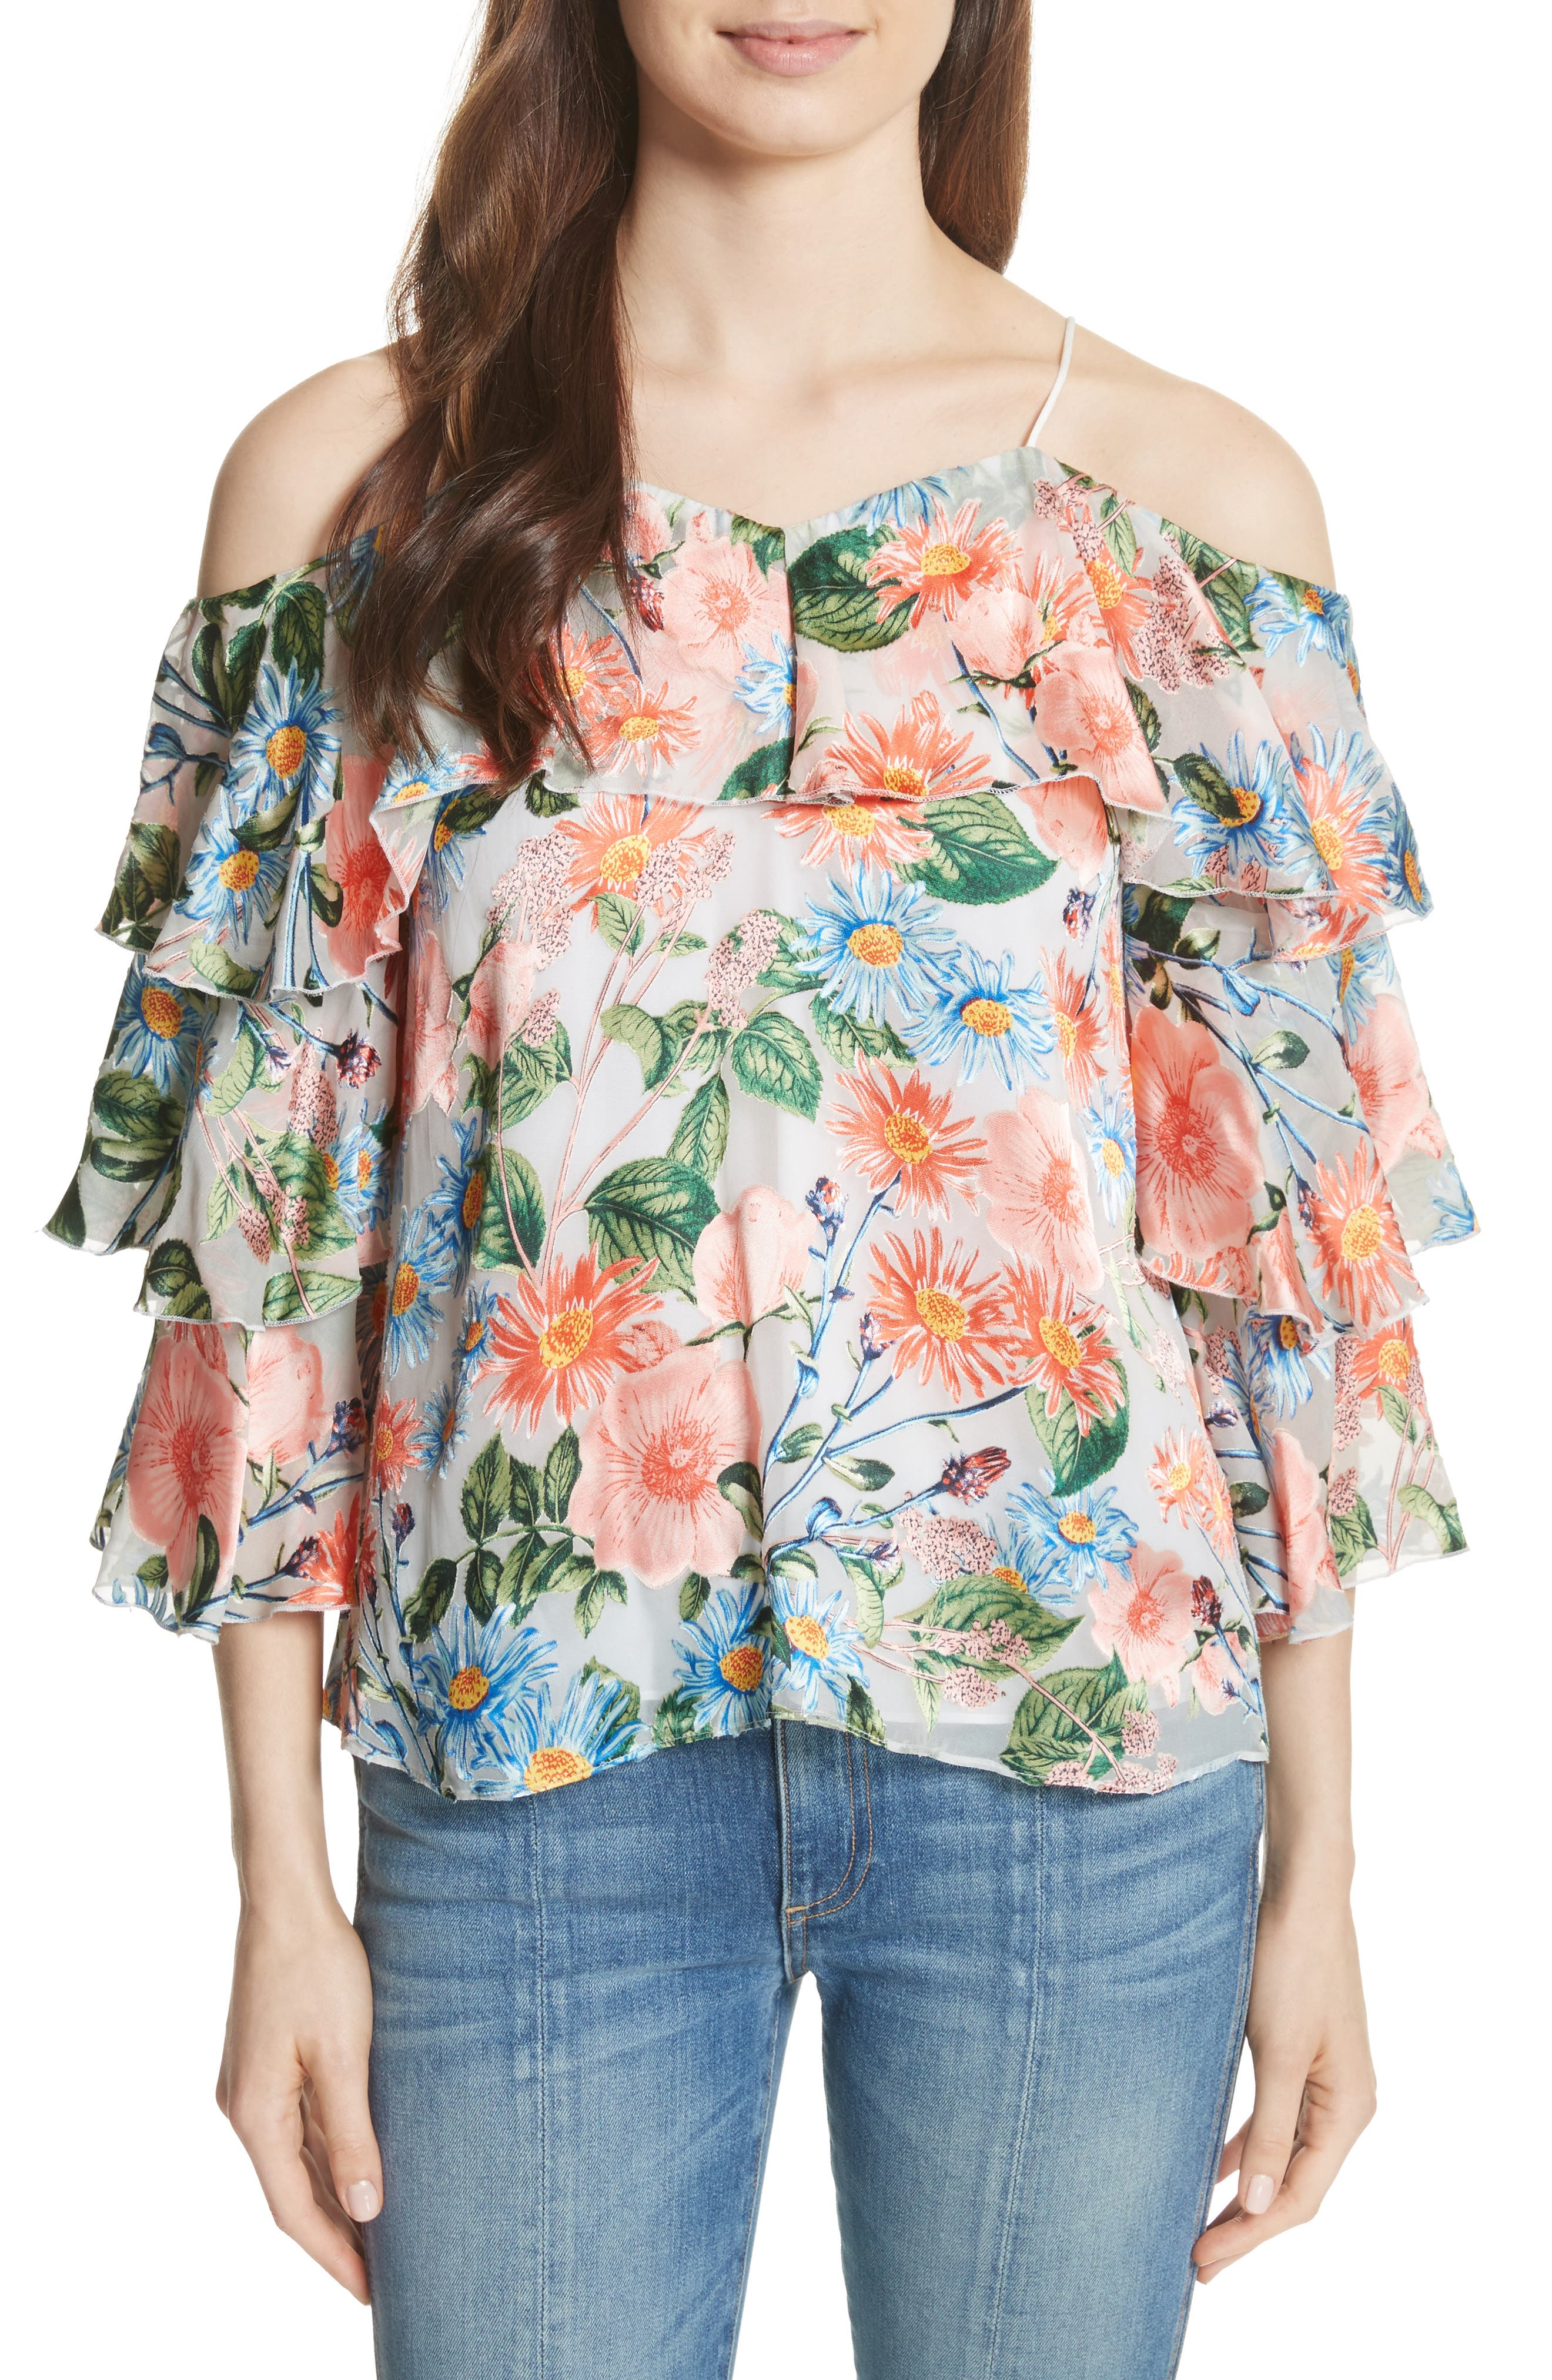 Marylee Floral Off the Shoulder Blouse,                             Main thumbnail 1, color,                             470